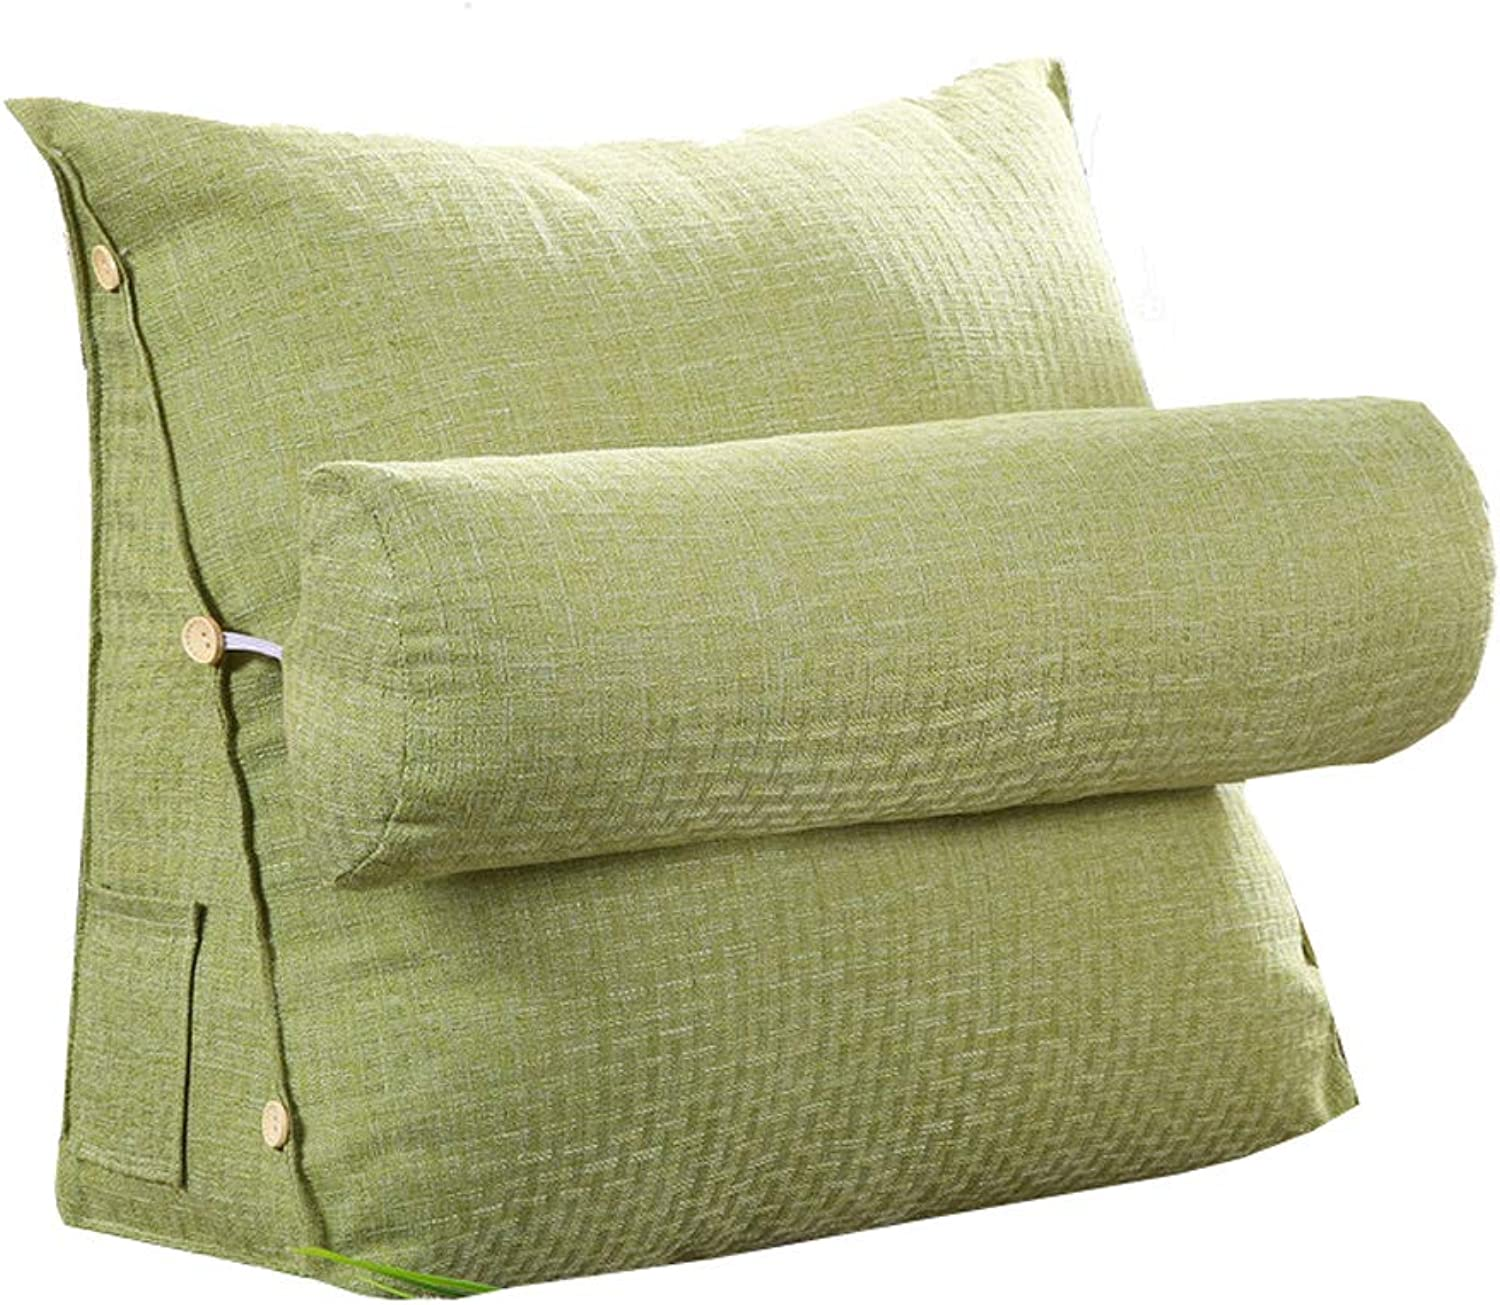 Triangle Cushion Cotton and Linen Back Lumbar Reading Pillow,Applicable to Sofa Office Chair Car (Removable) (color   Green, Size   60  50  20cm)